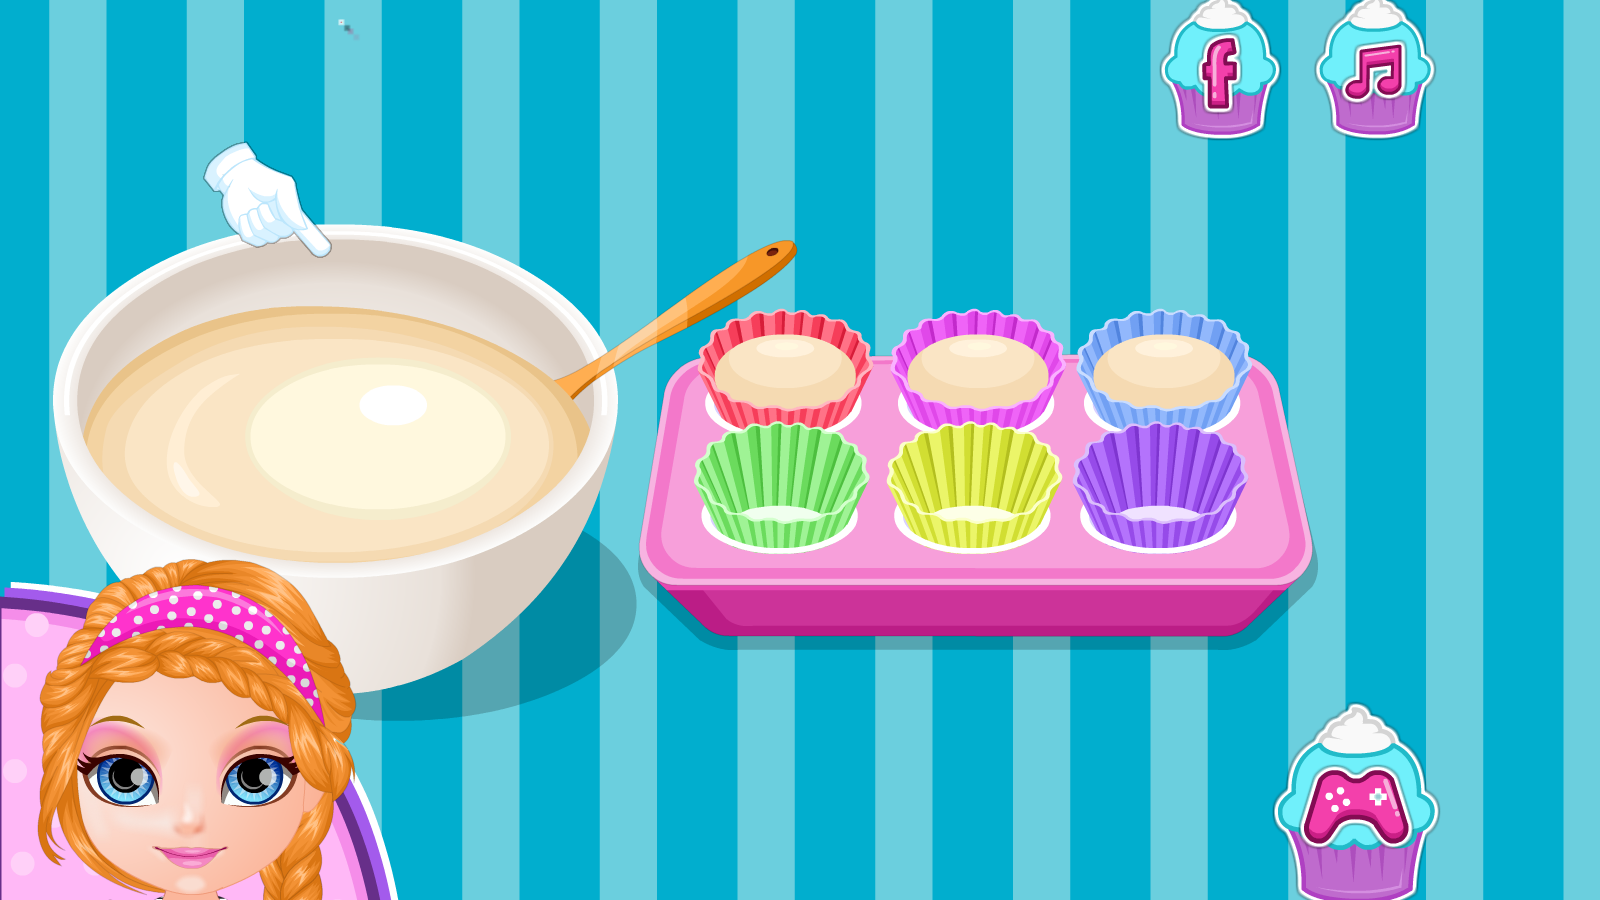 Baby Pony Cupcakes 1 0 0 APK Download Android Educational